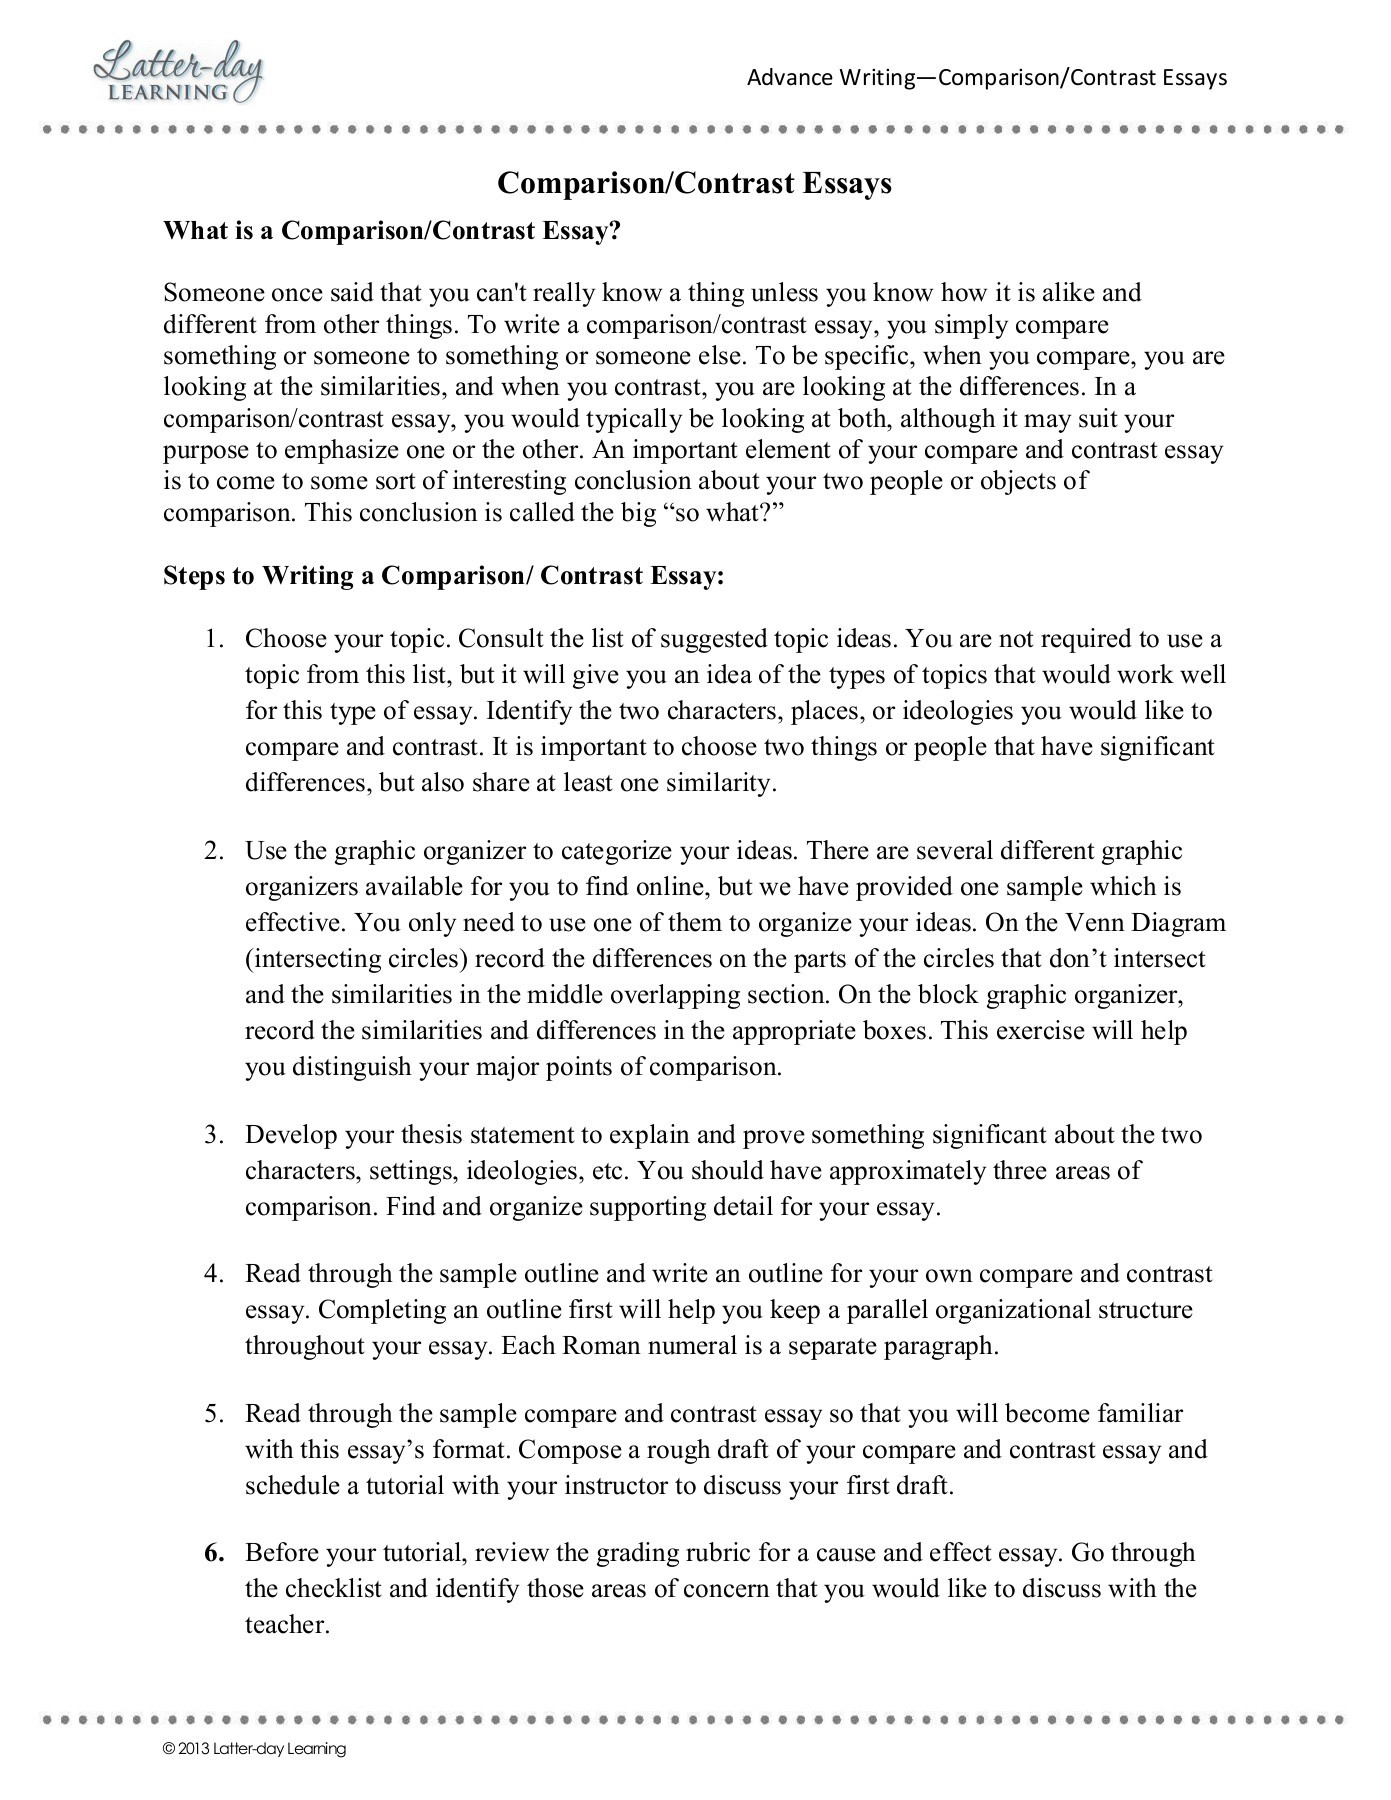 010 Essay Example What Is Compare And Contrast Striking A Does Comparison/contrast Look Like Should Provide Good Topic Sentence For Full